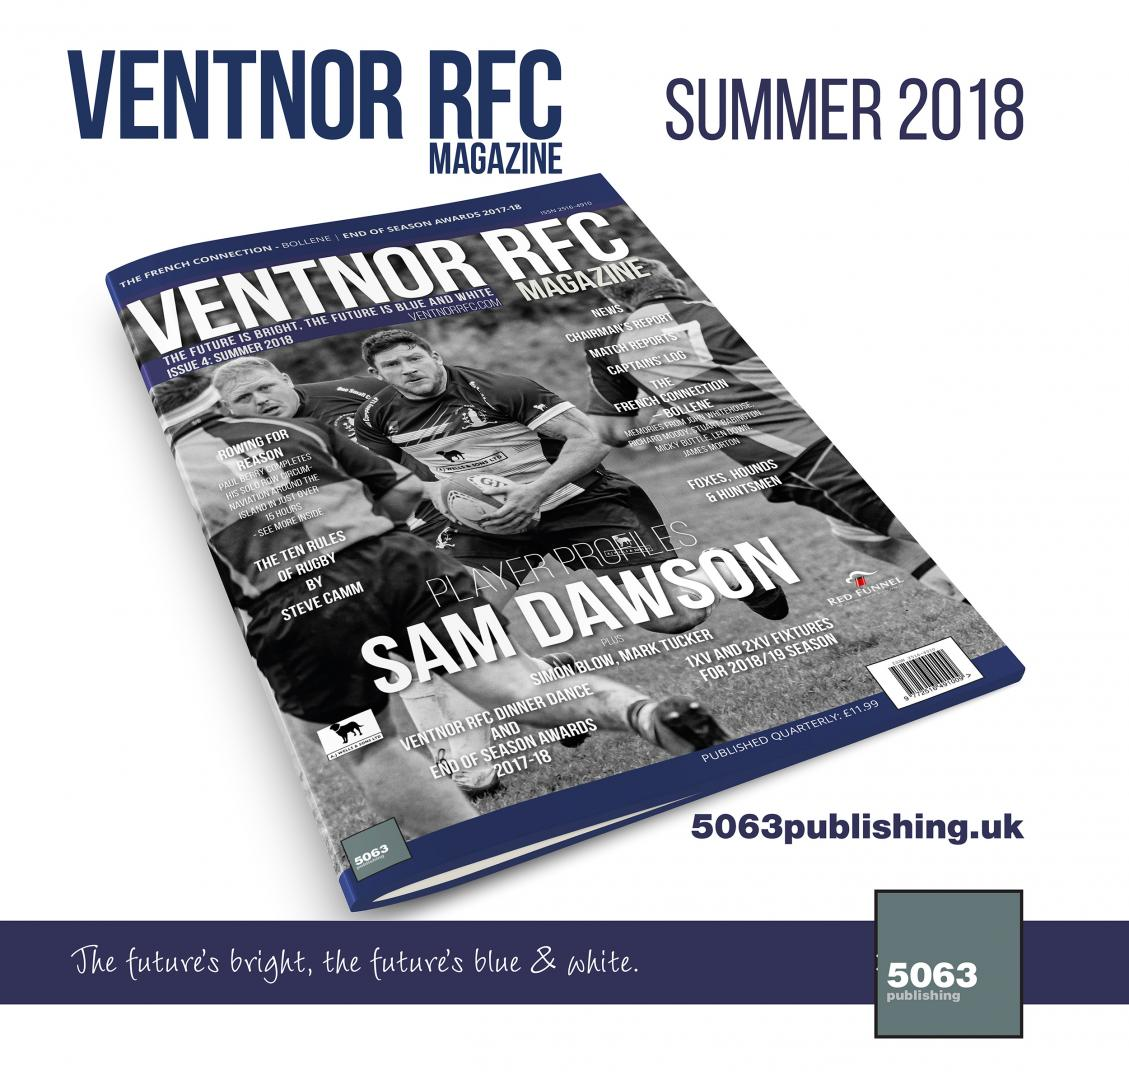 Ventnor RFC Magazine: